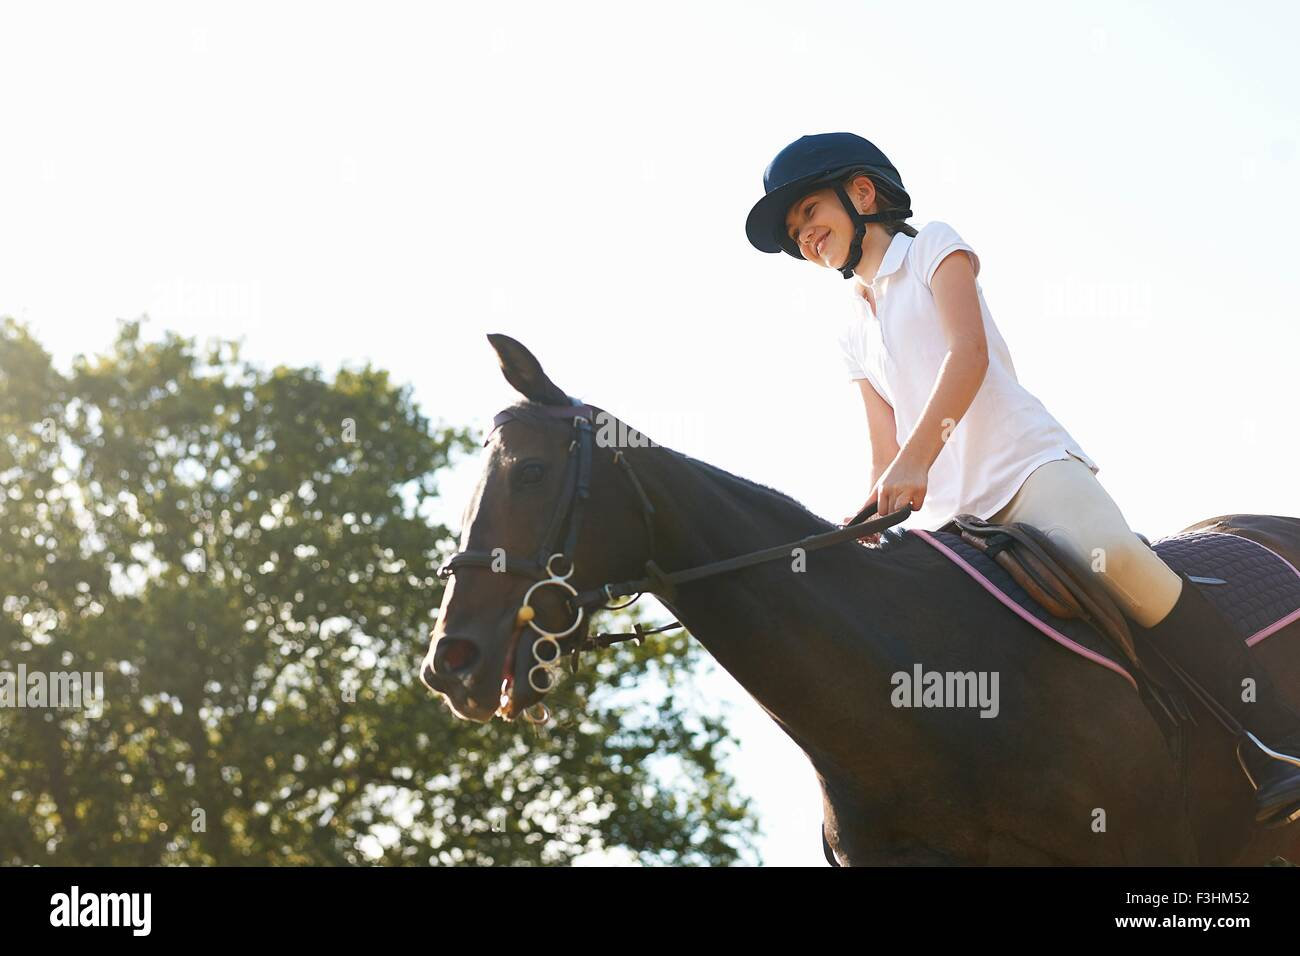 Low angle view of girl riding horse in countryside - Stock Image